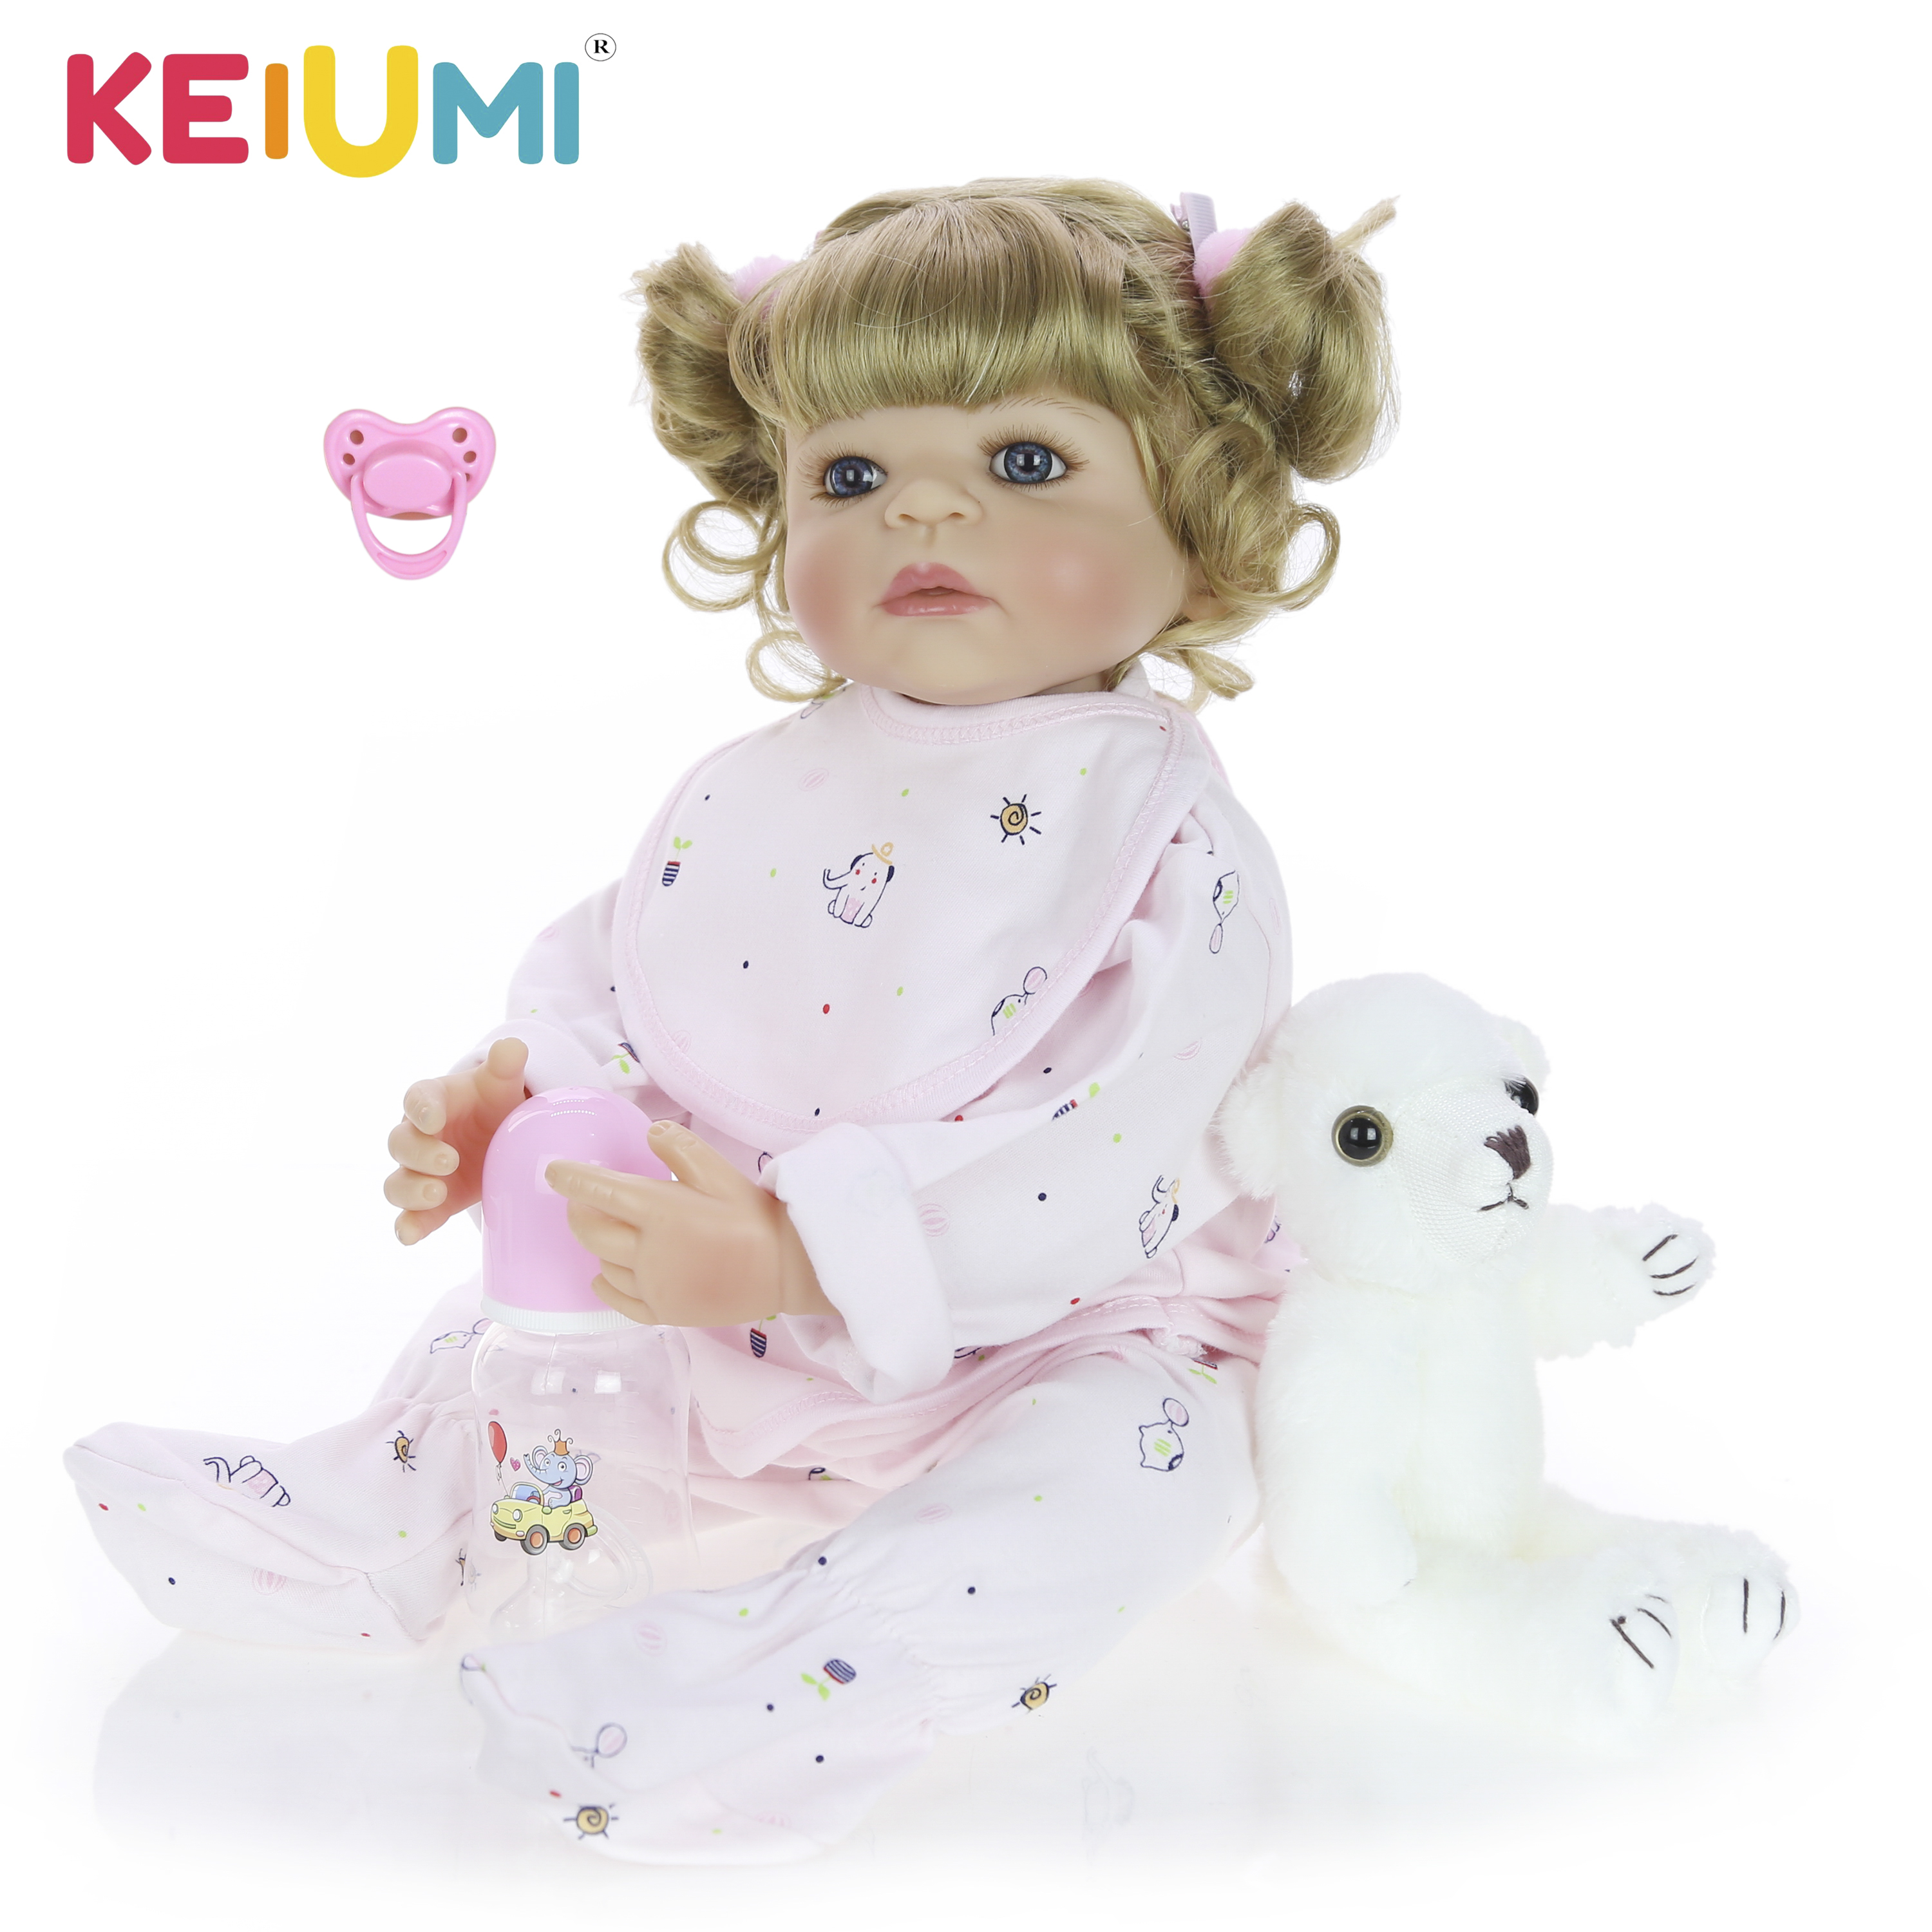 New Design 22 Inch 55 cm Reborn Baby Girl Full Silicone Body Reborn Dolls Lifelike Kids Playmate Baby Toys Girl Christmas GiftsNew Design 22 Inch 55 cm Reborn Baby Girl Full Silicone Body Reborn Dolls Lifelike Kids Playmate Baby Toys Girl Christmas Gifts